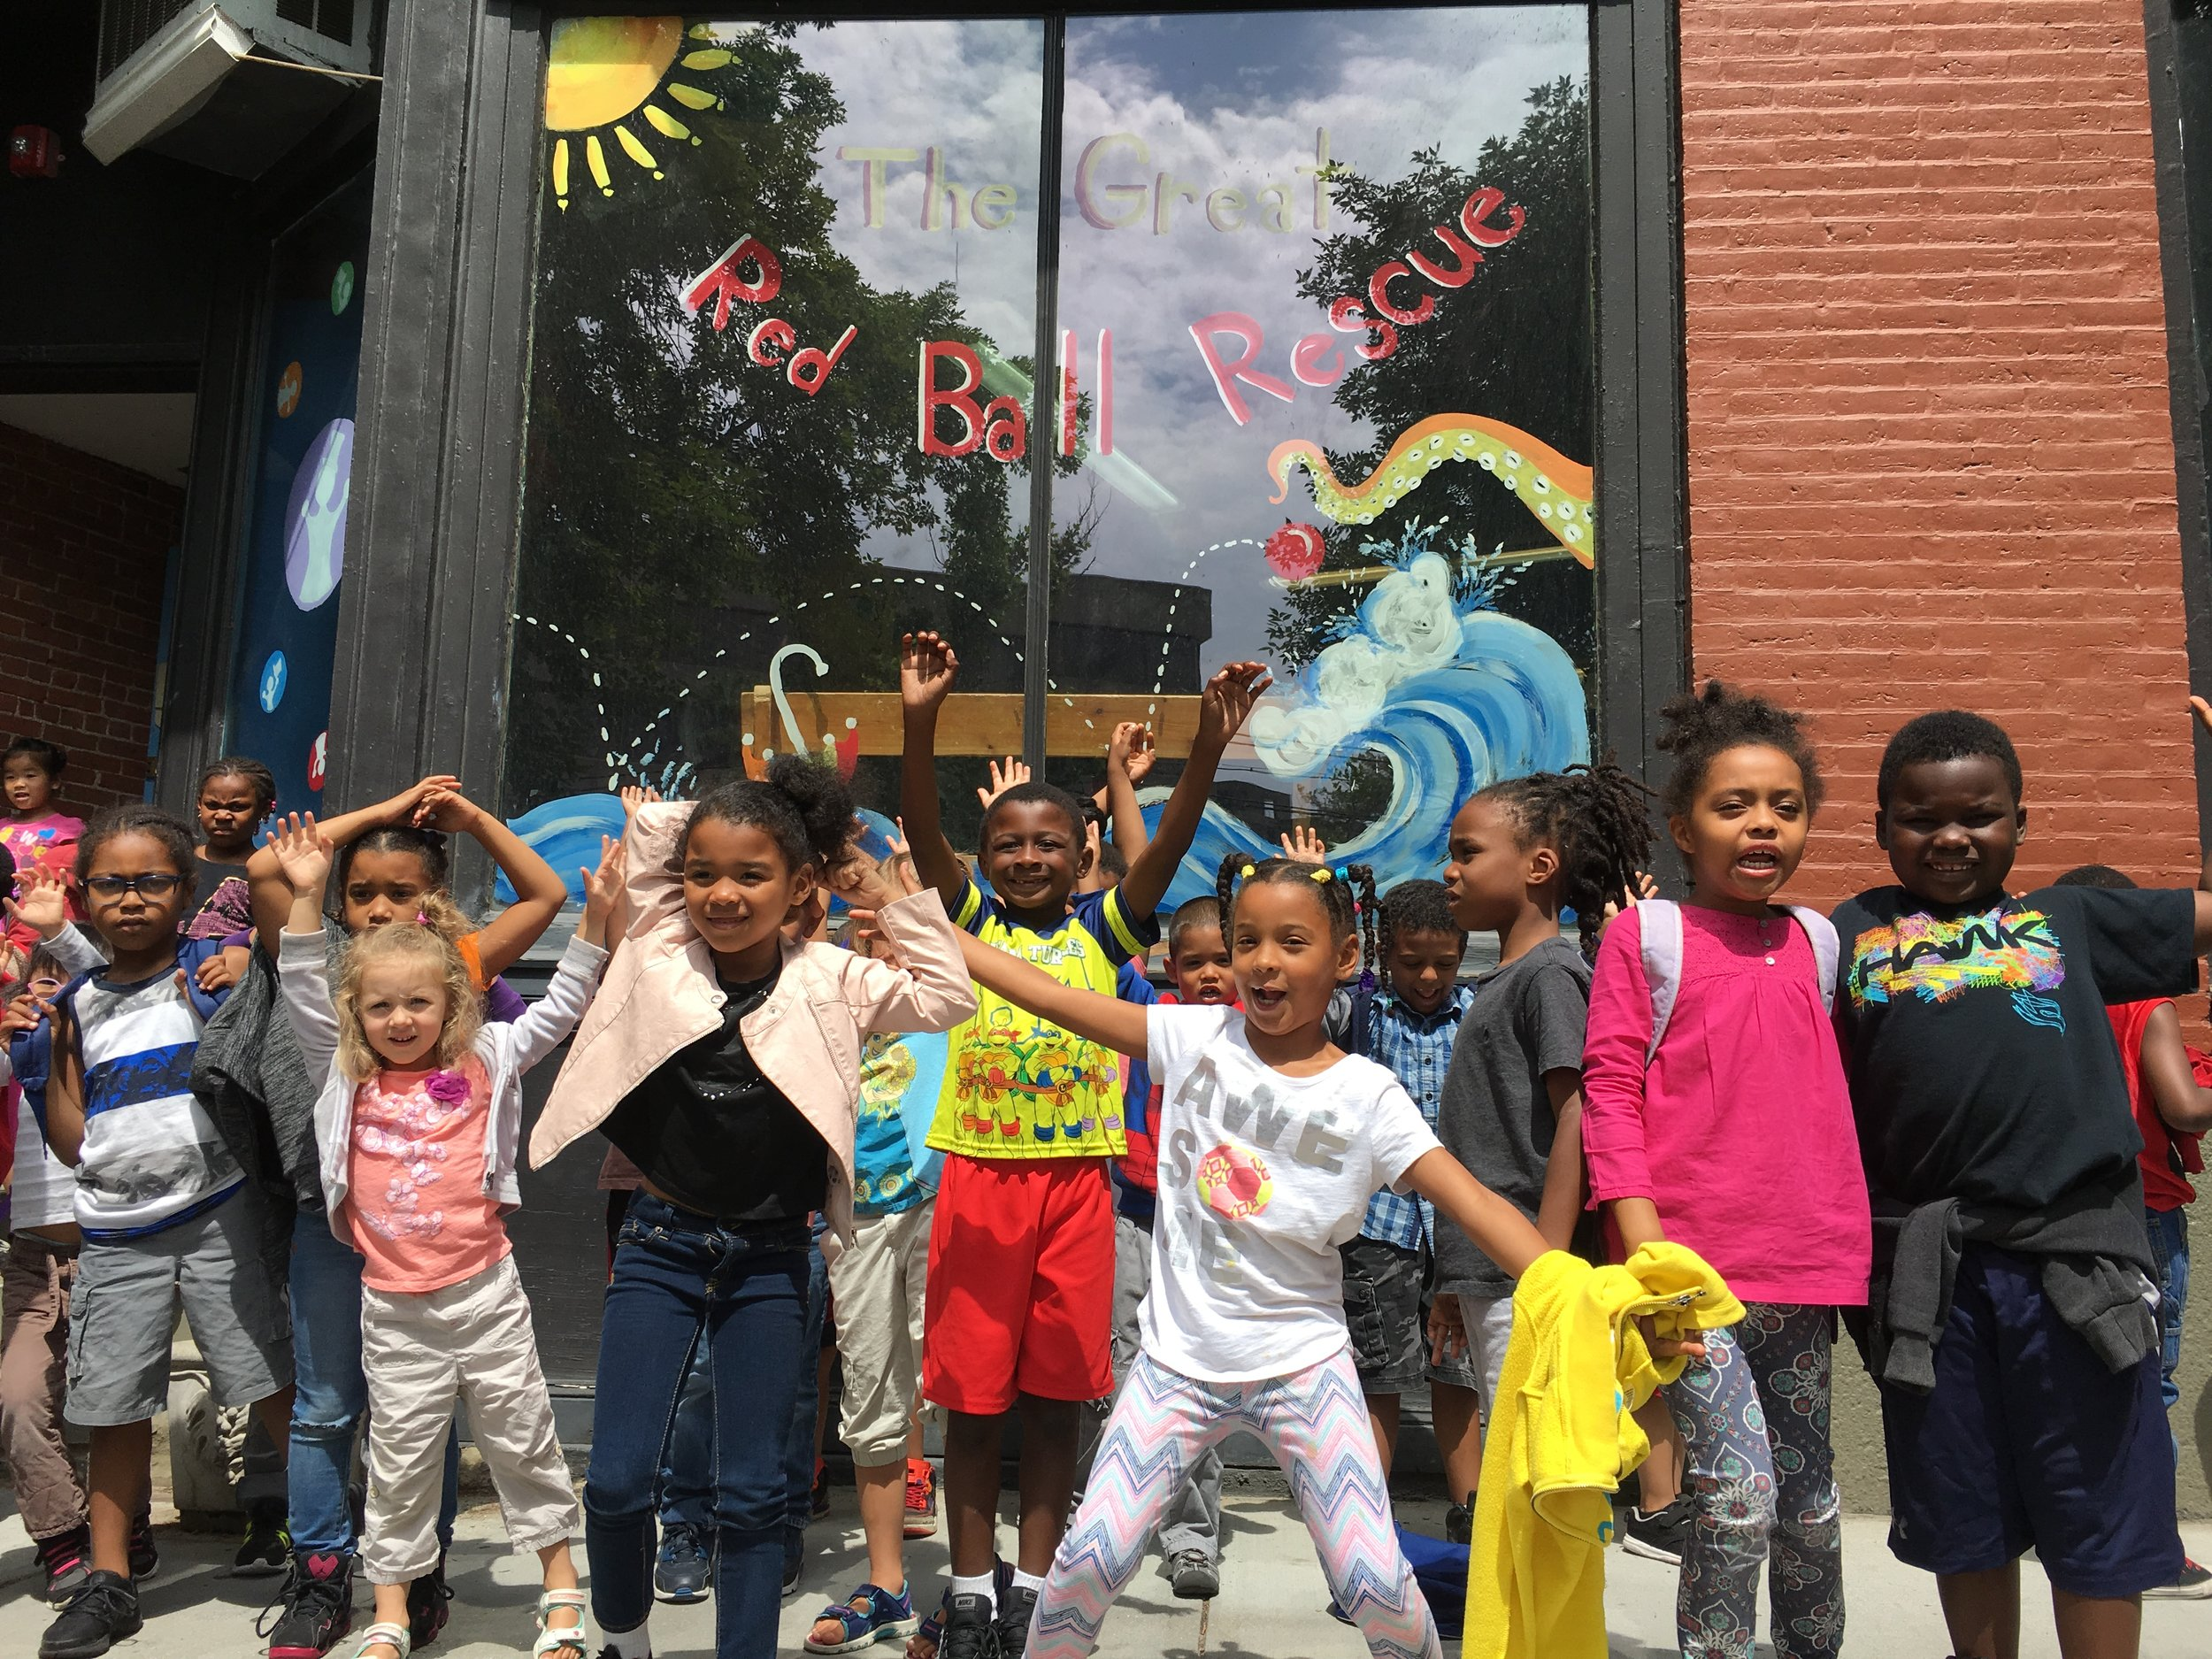 Outreach   Each year we provide over 1,000 free and subsidized tickets to children from Boston's underserved communities in honor of our founder Mary Churchill.